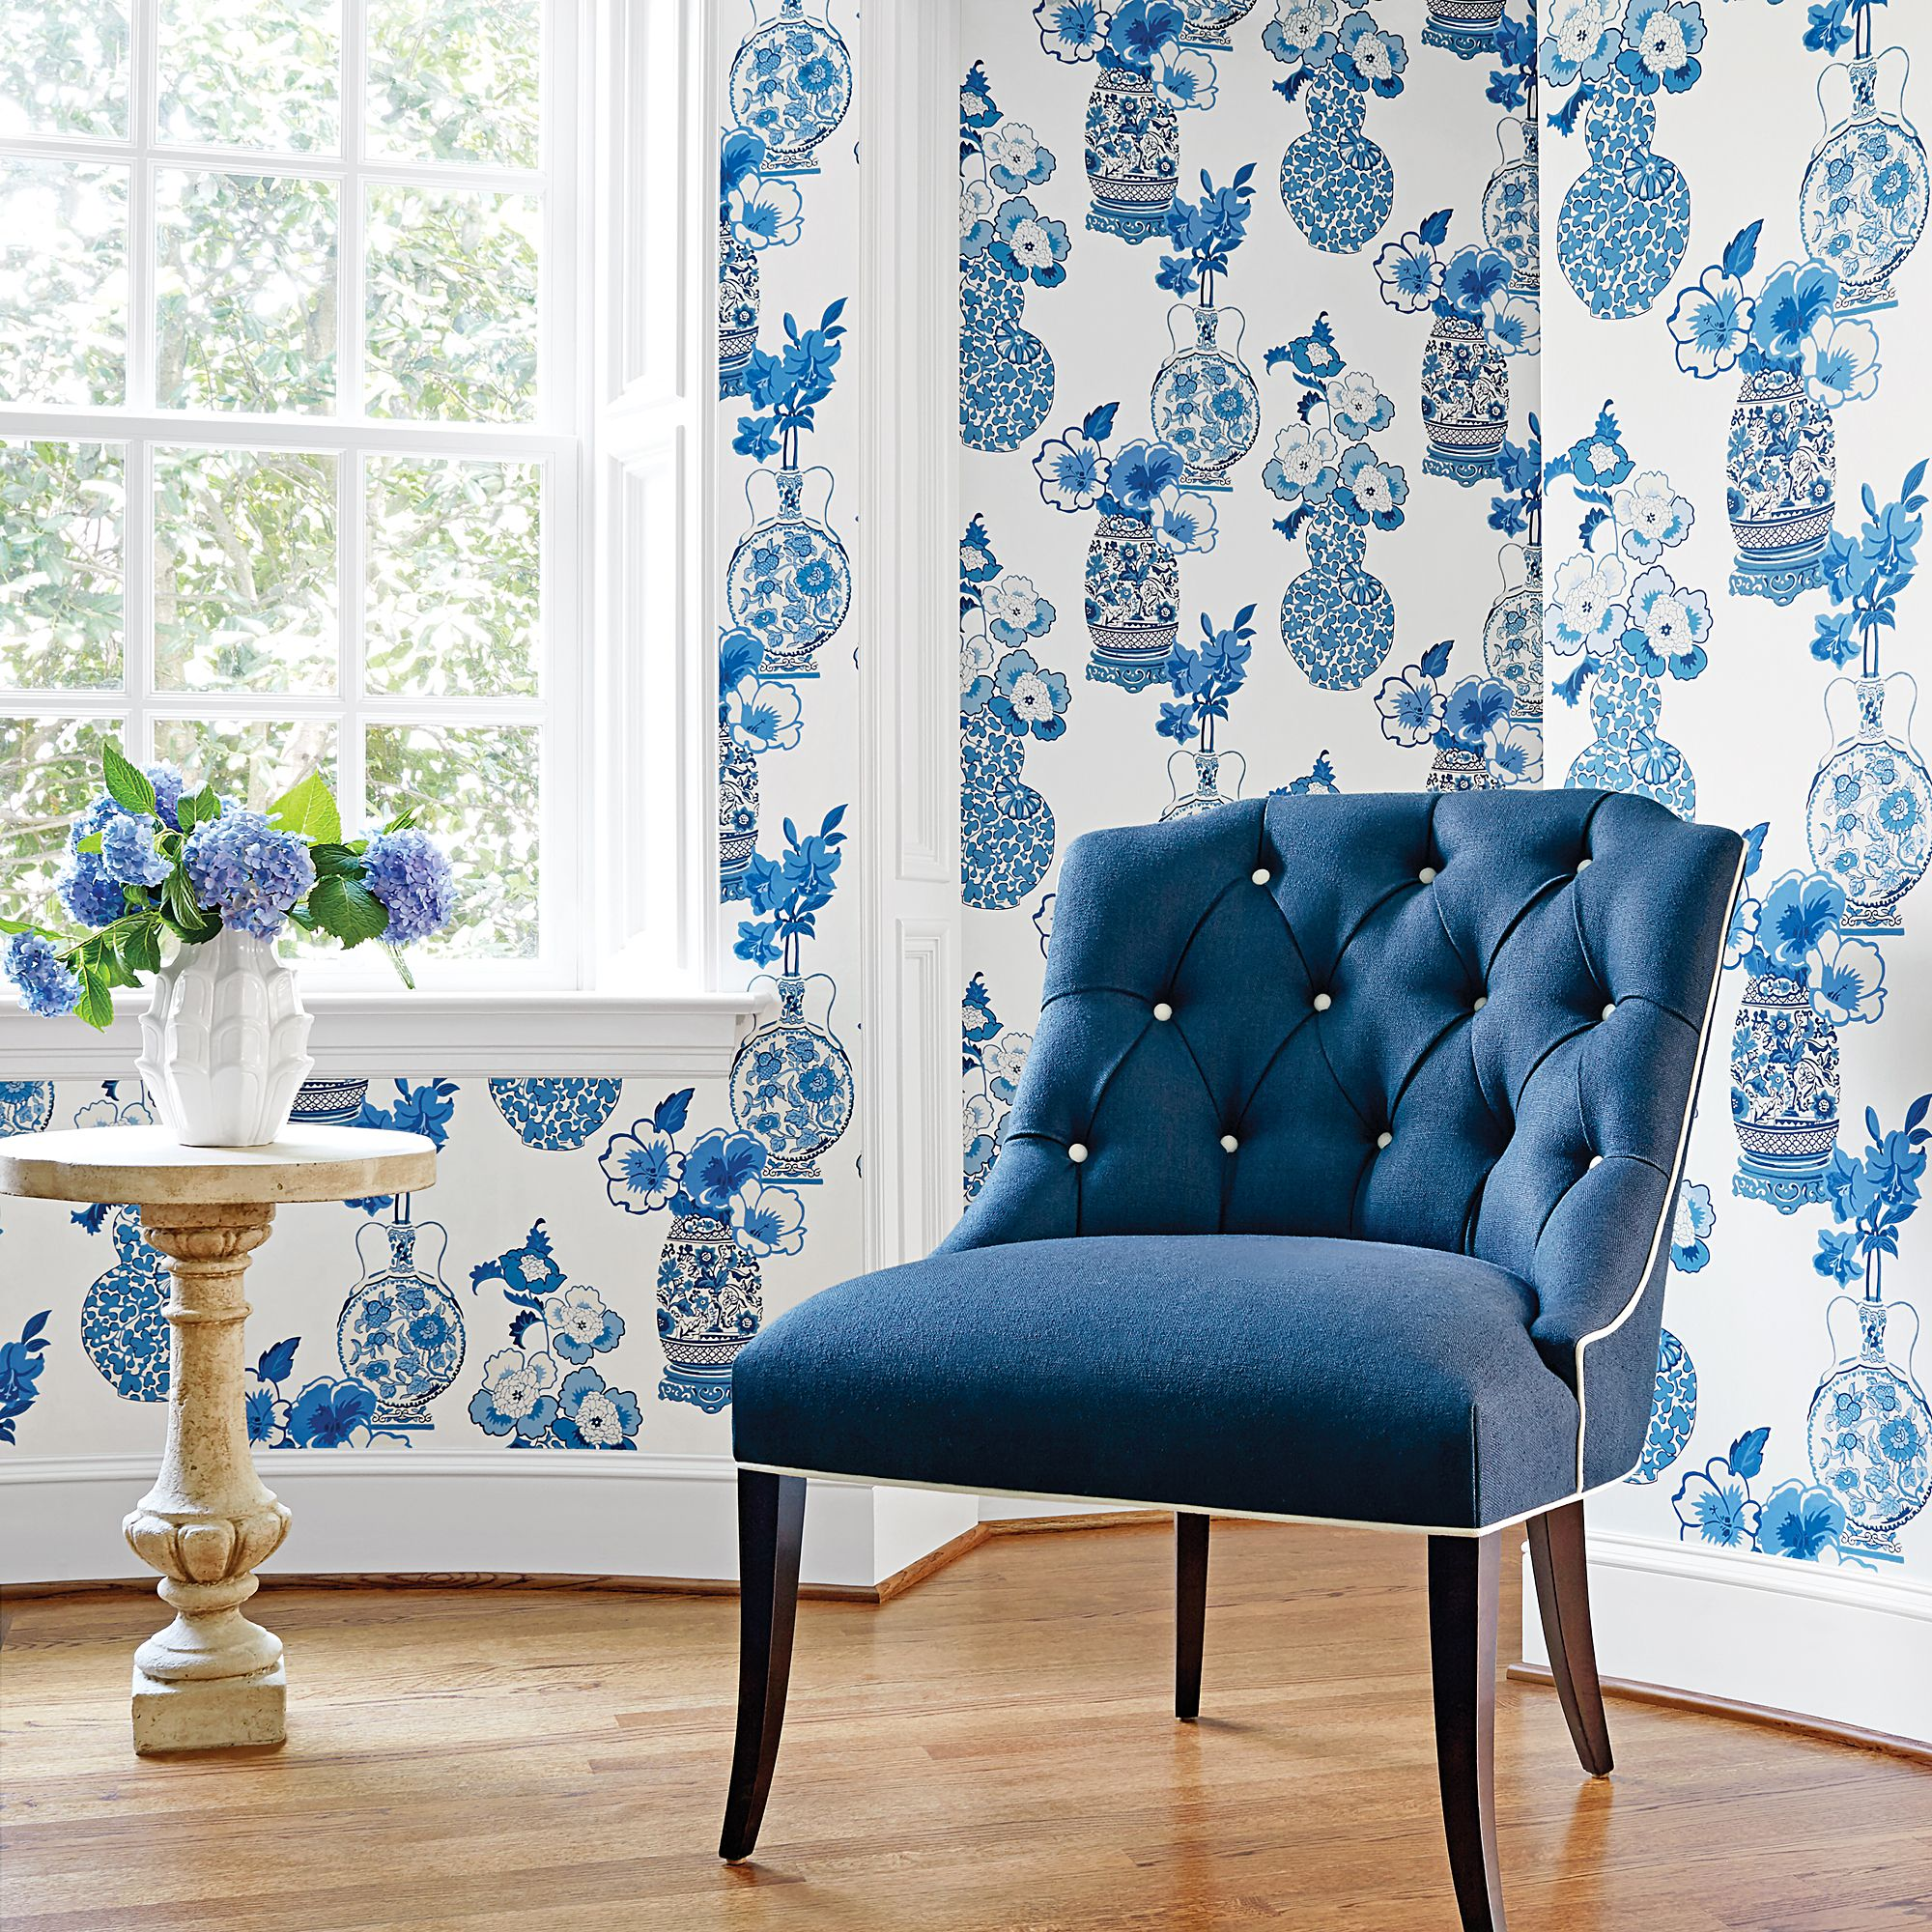 Clarissa from Serenade Collection Anna french wallpaper